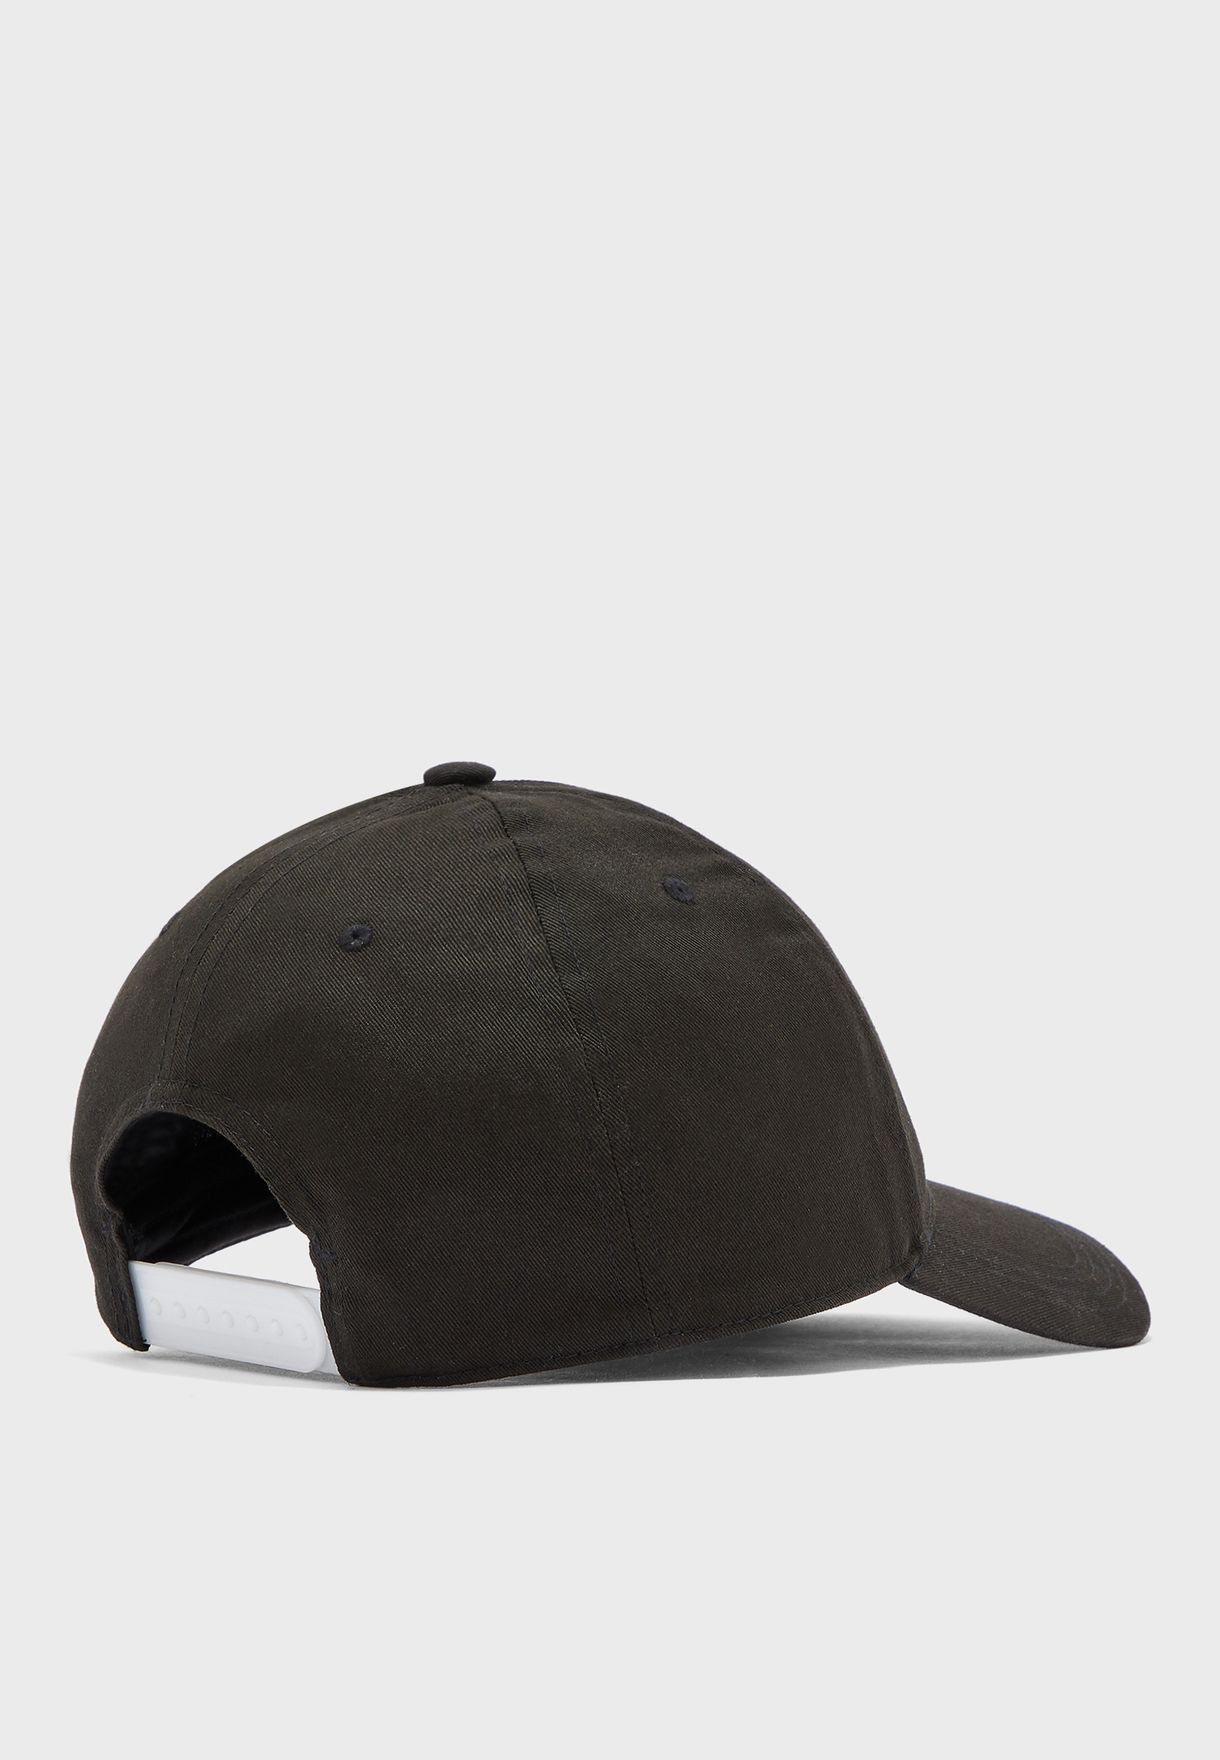 Daily Essentials Sports Unisex Cap